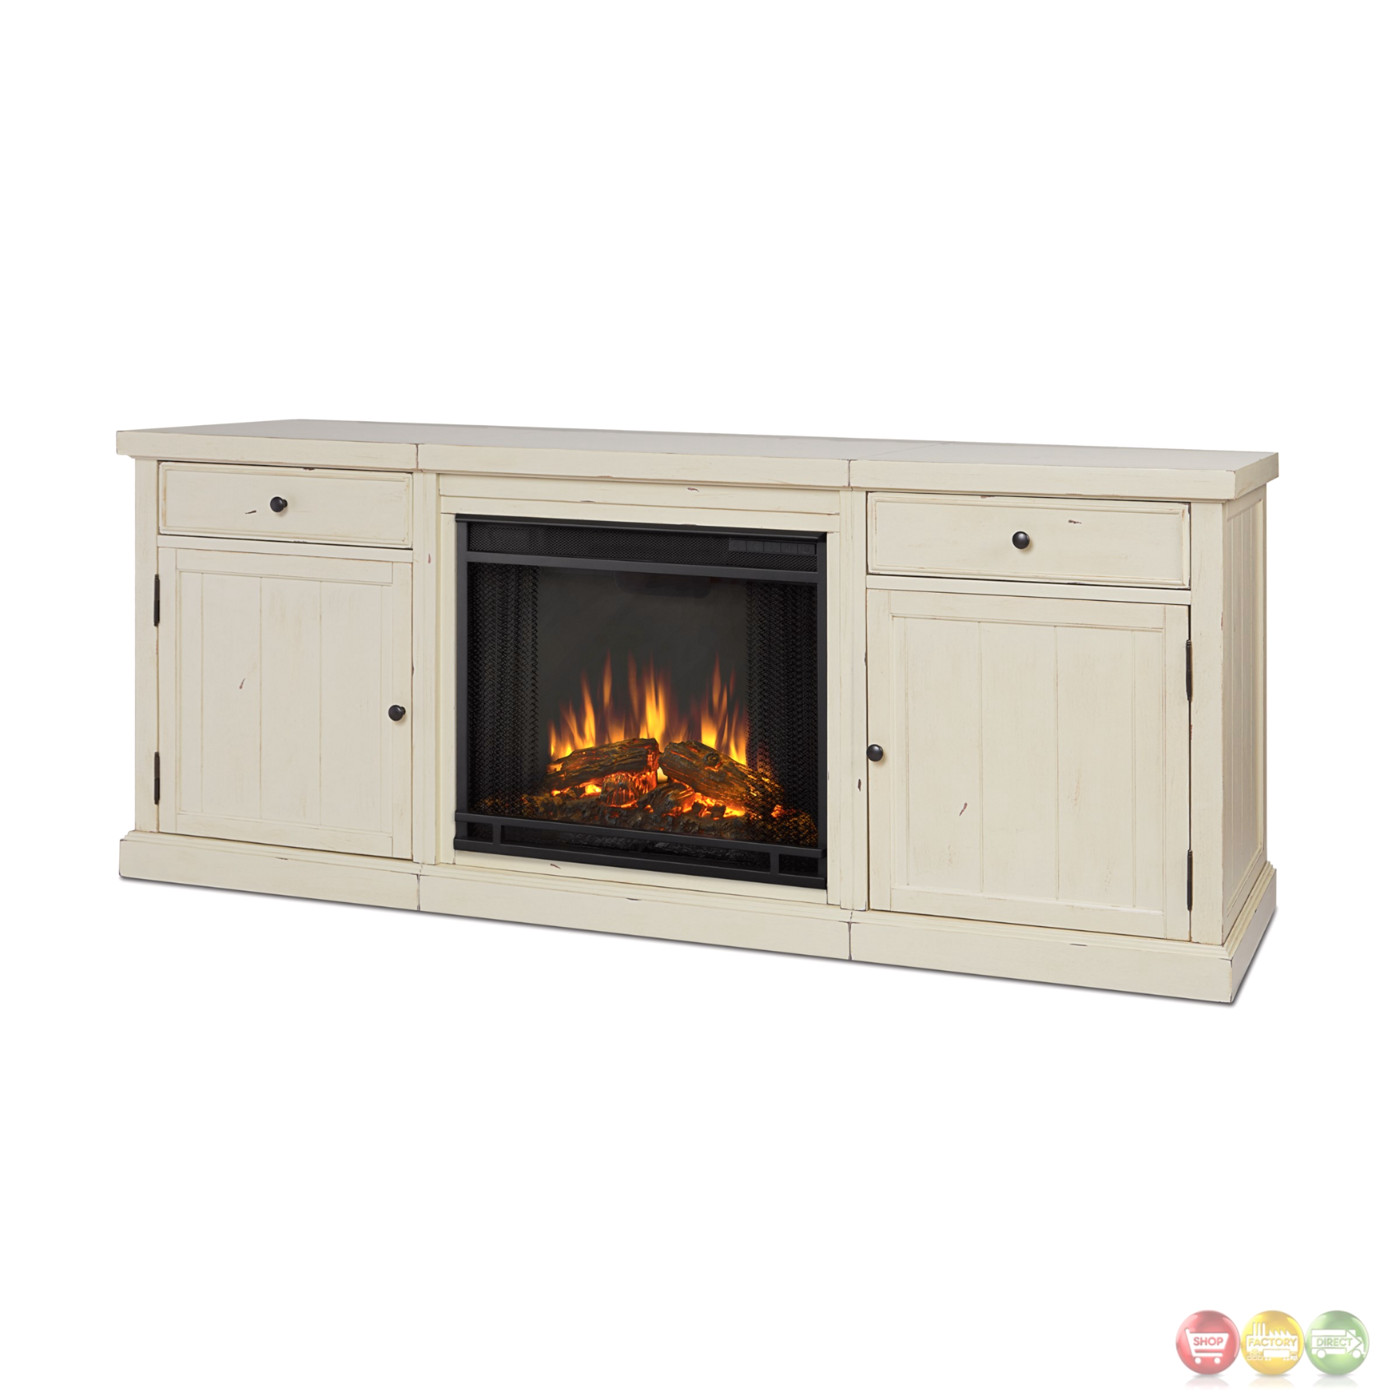 Cassidy Entertainment Center Electric Fireplace In Distressed White 69x28